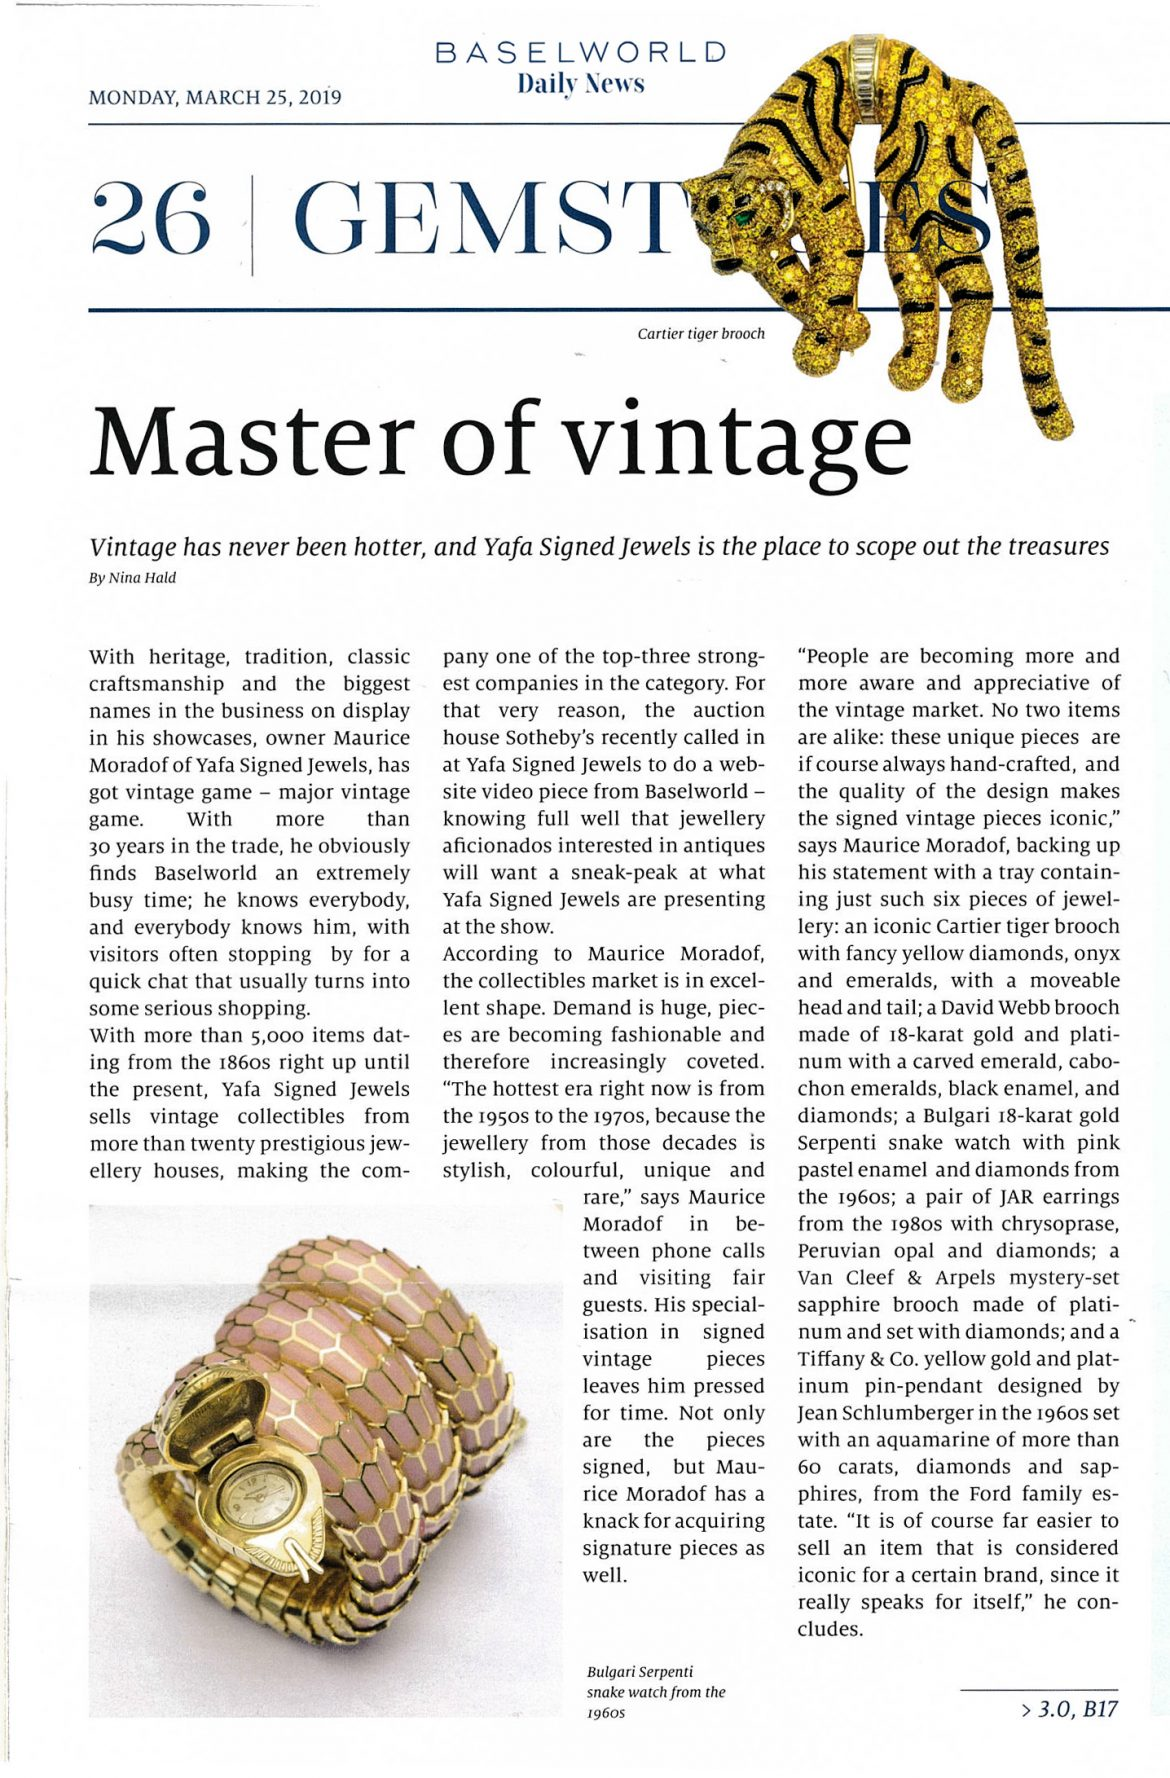 Master of Vintage - BaselWorld Daily News